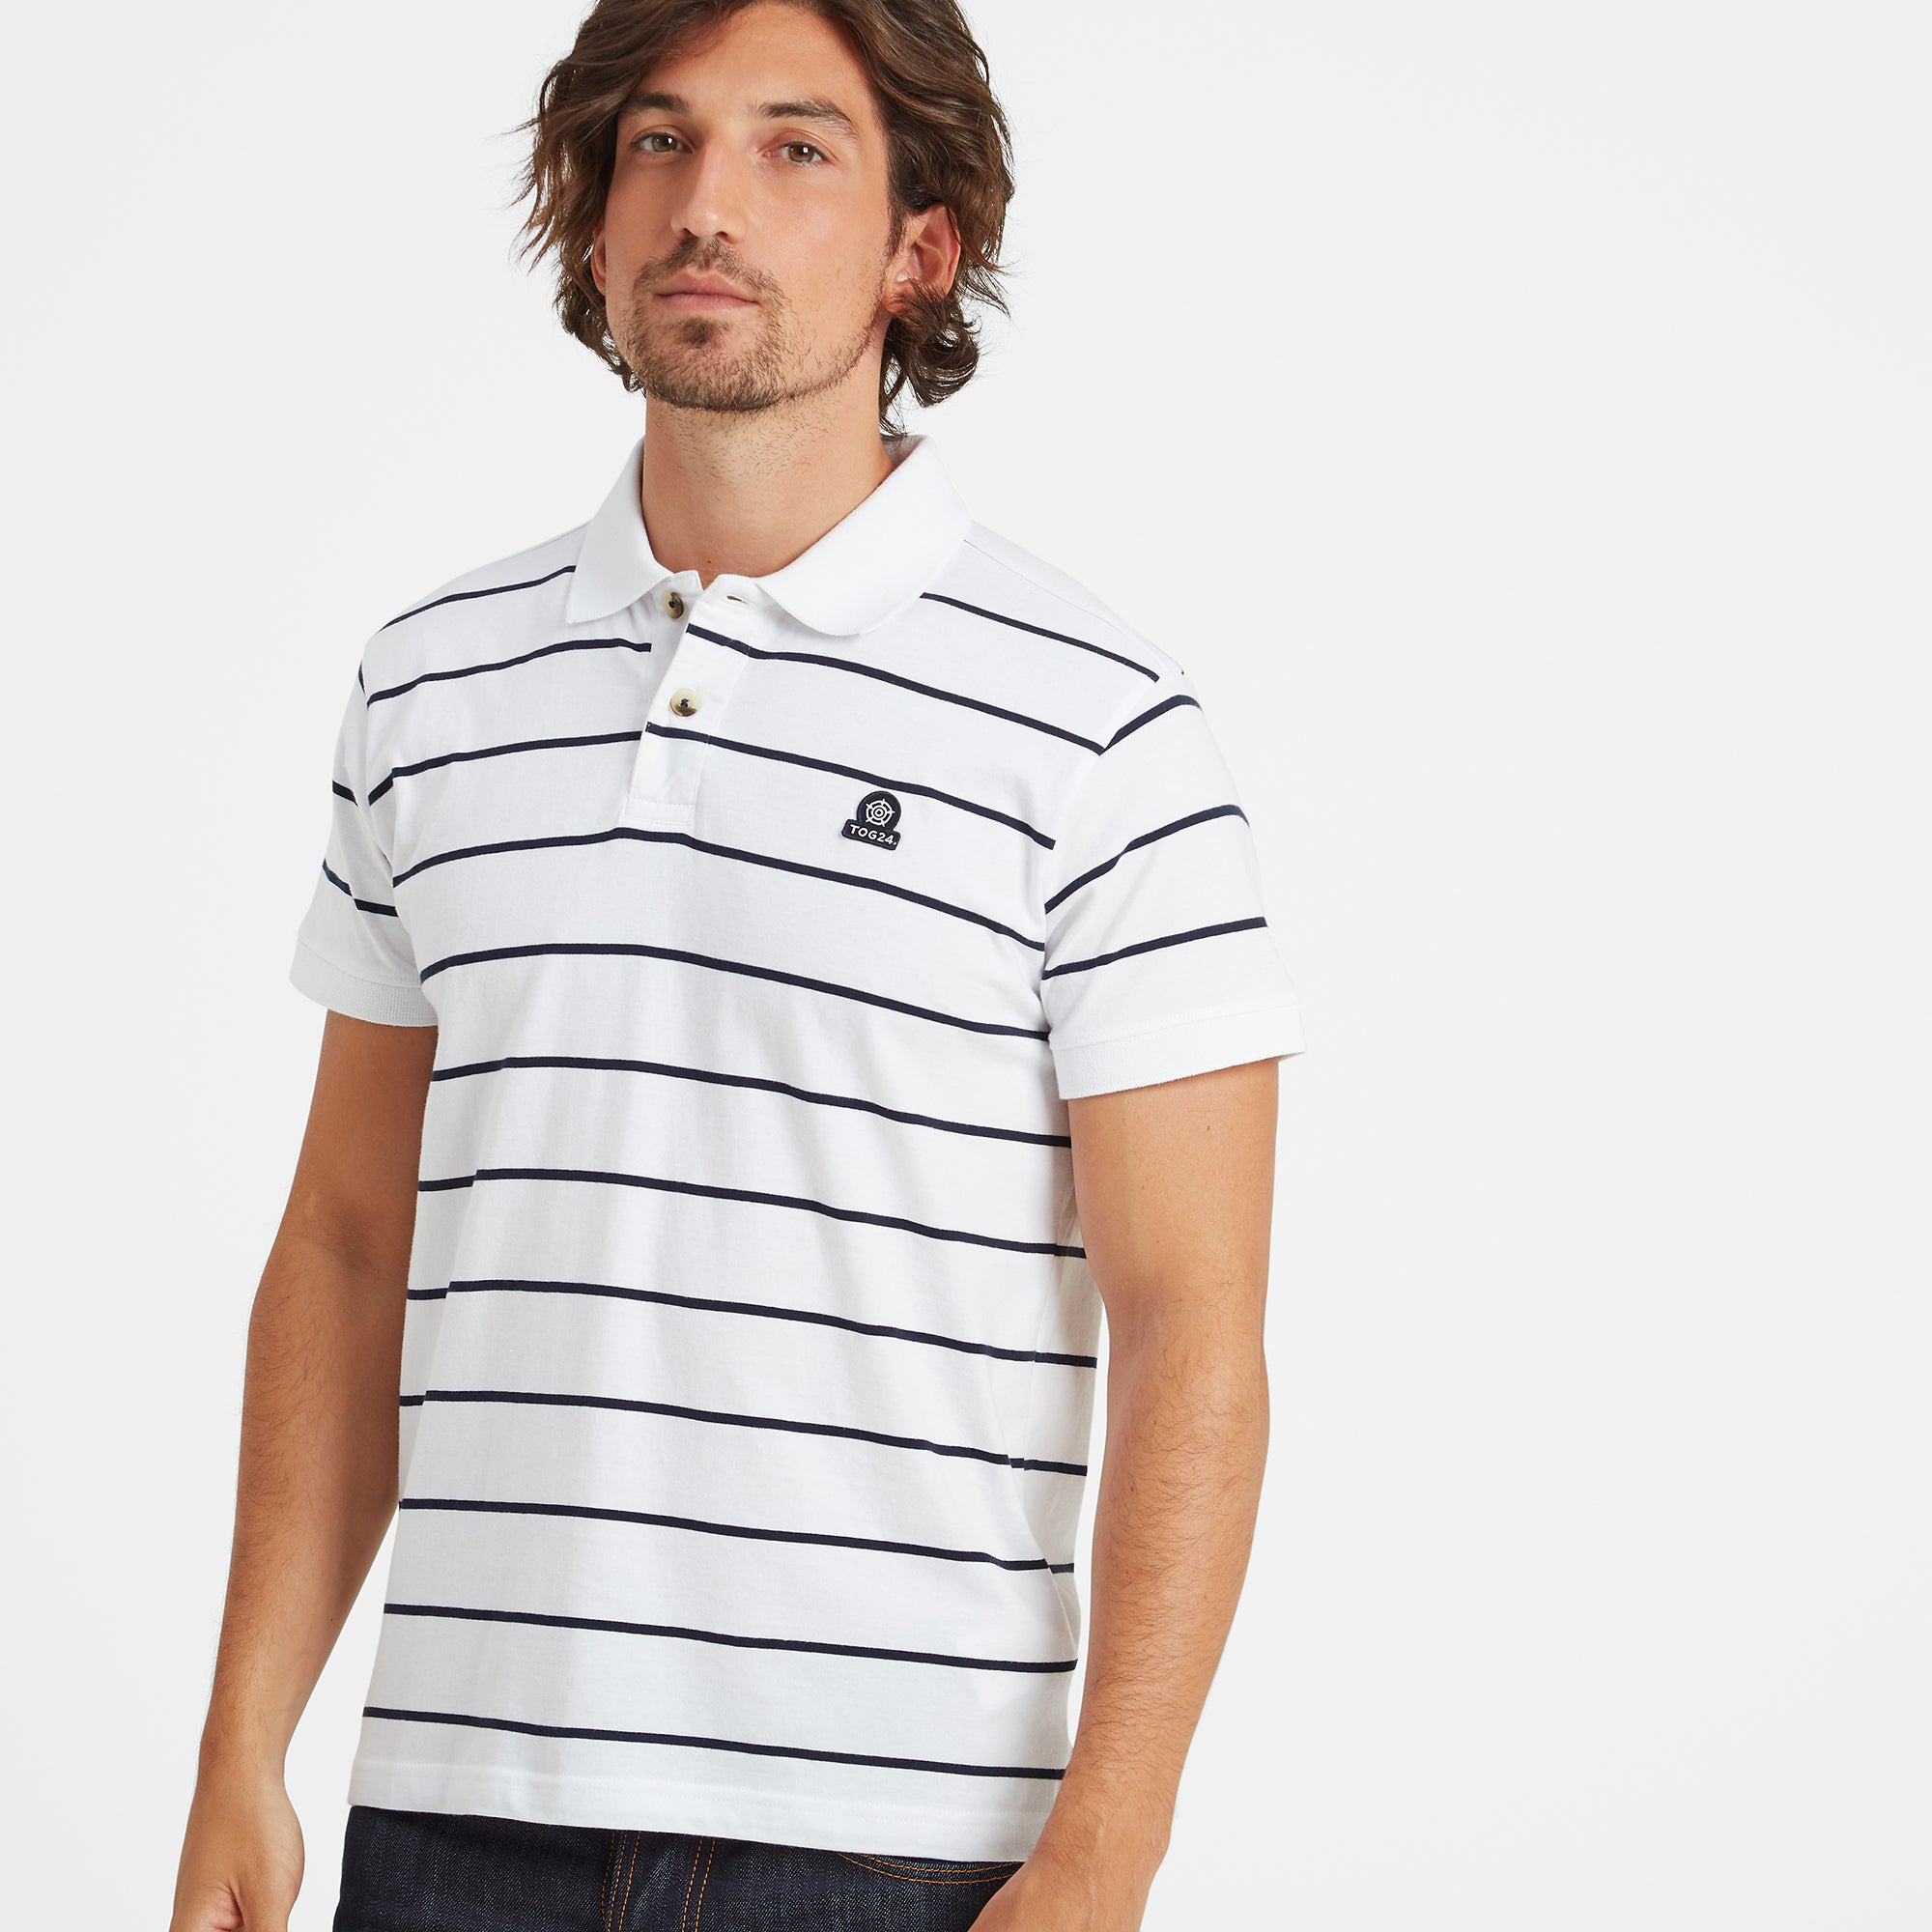 Alfie Mens Stripe Polo Shirt - White